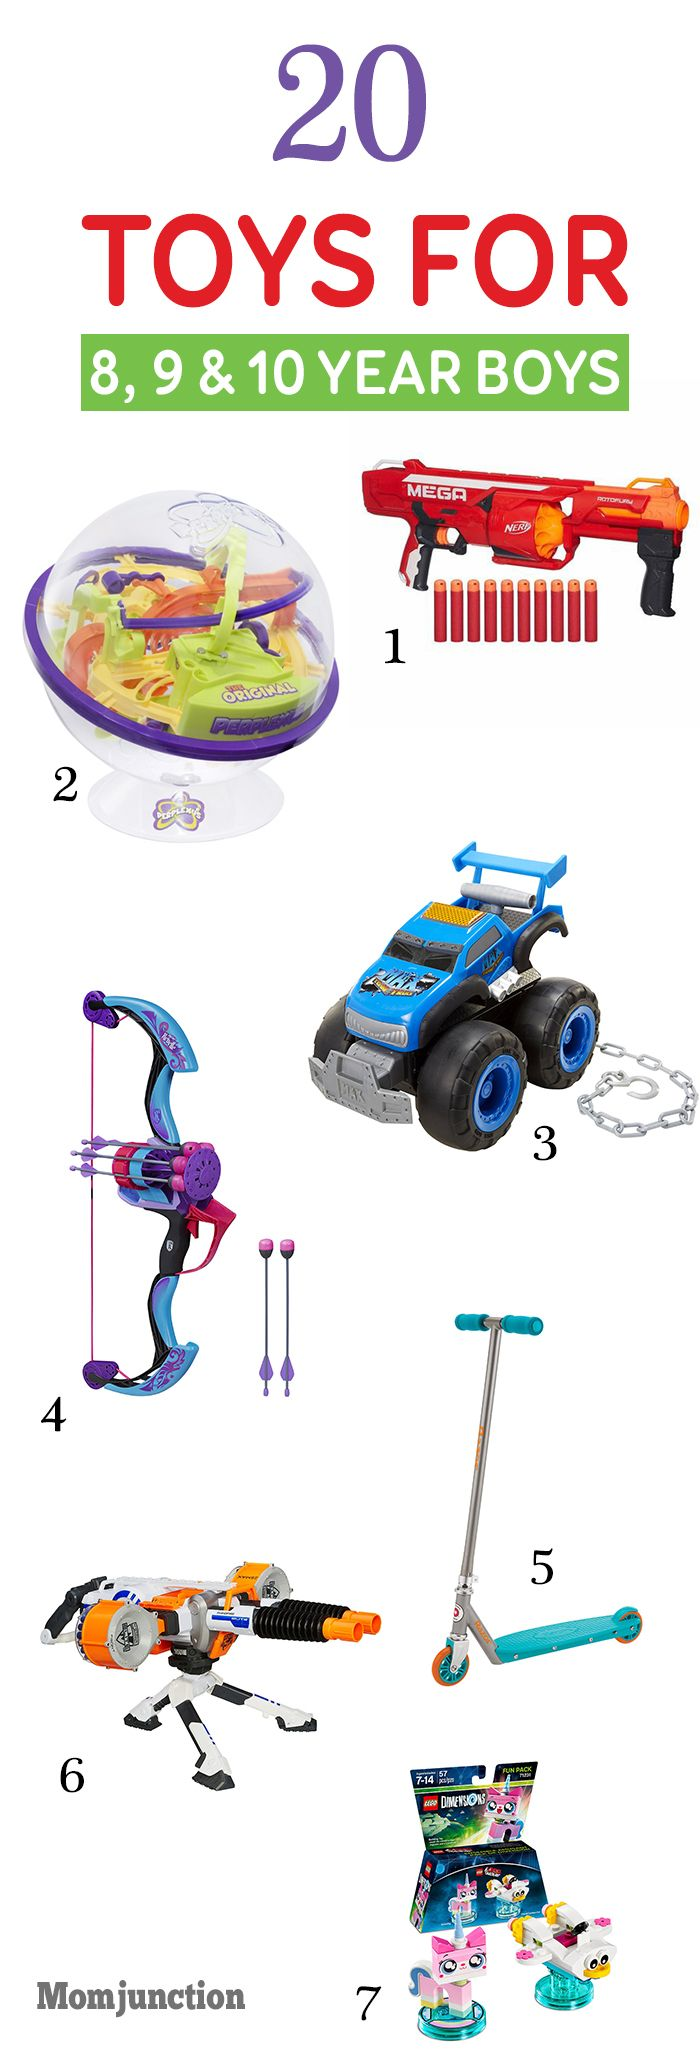 31 Best Toys For 8 9 And 10 Years Old Boys To Buy In 2019